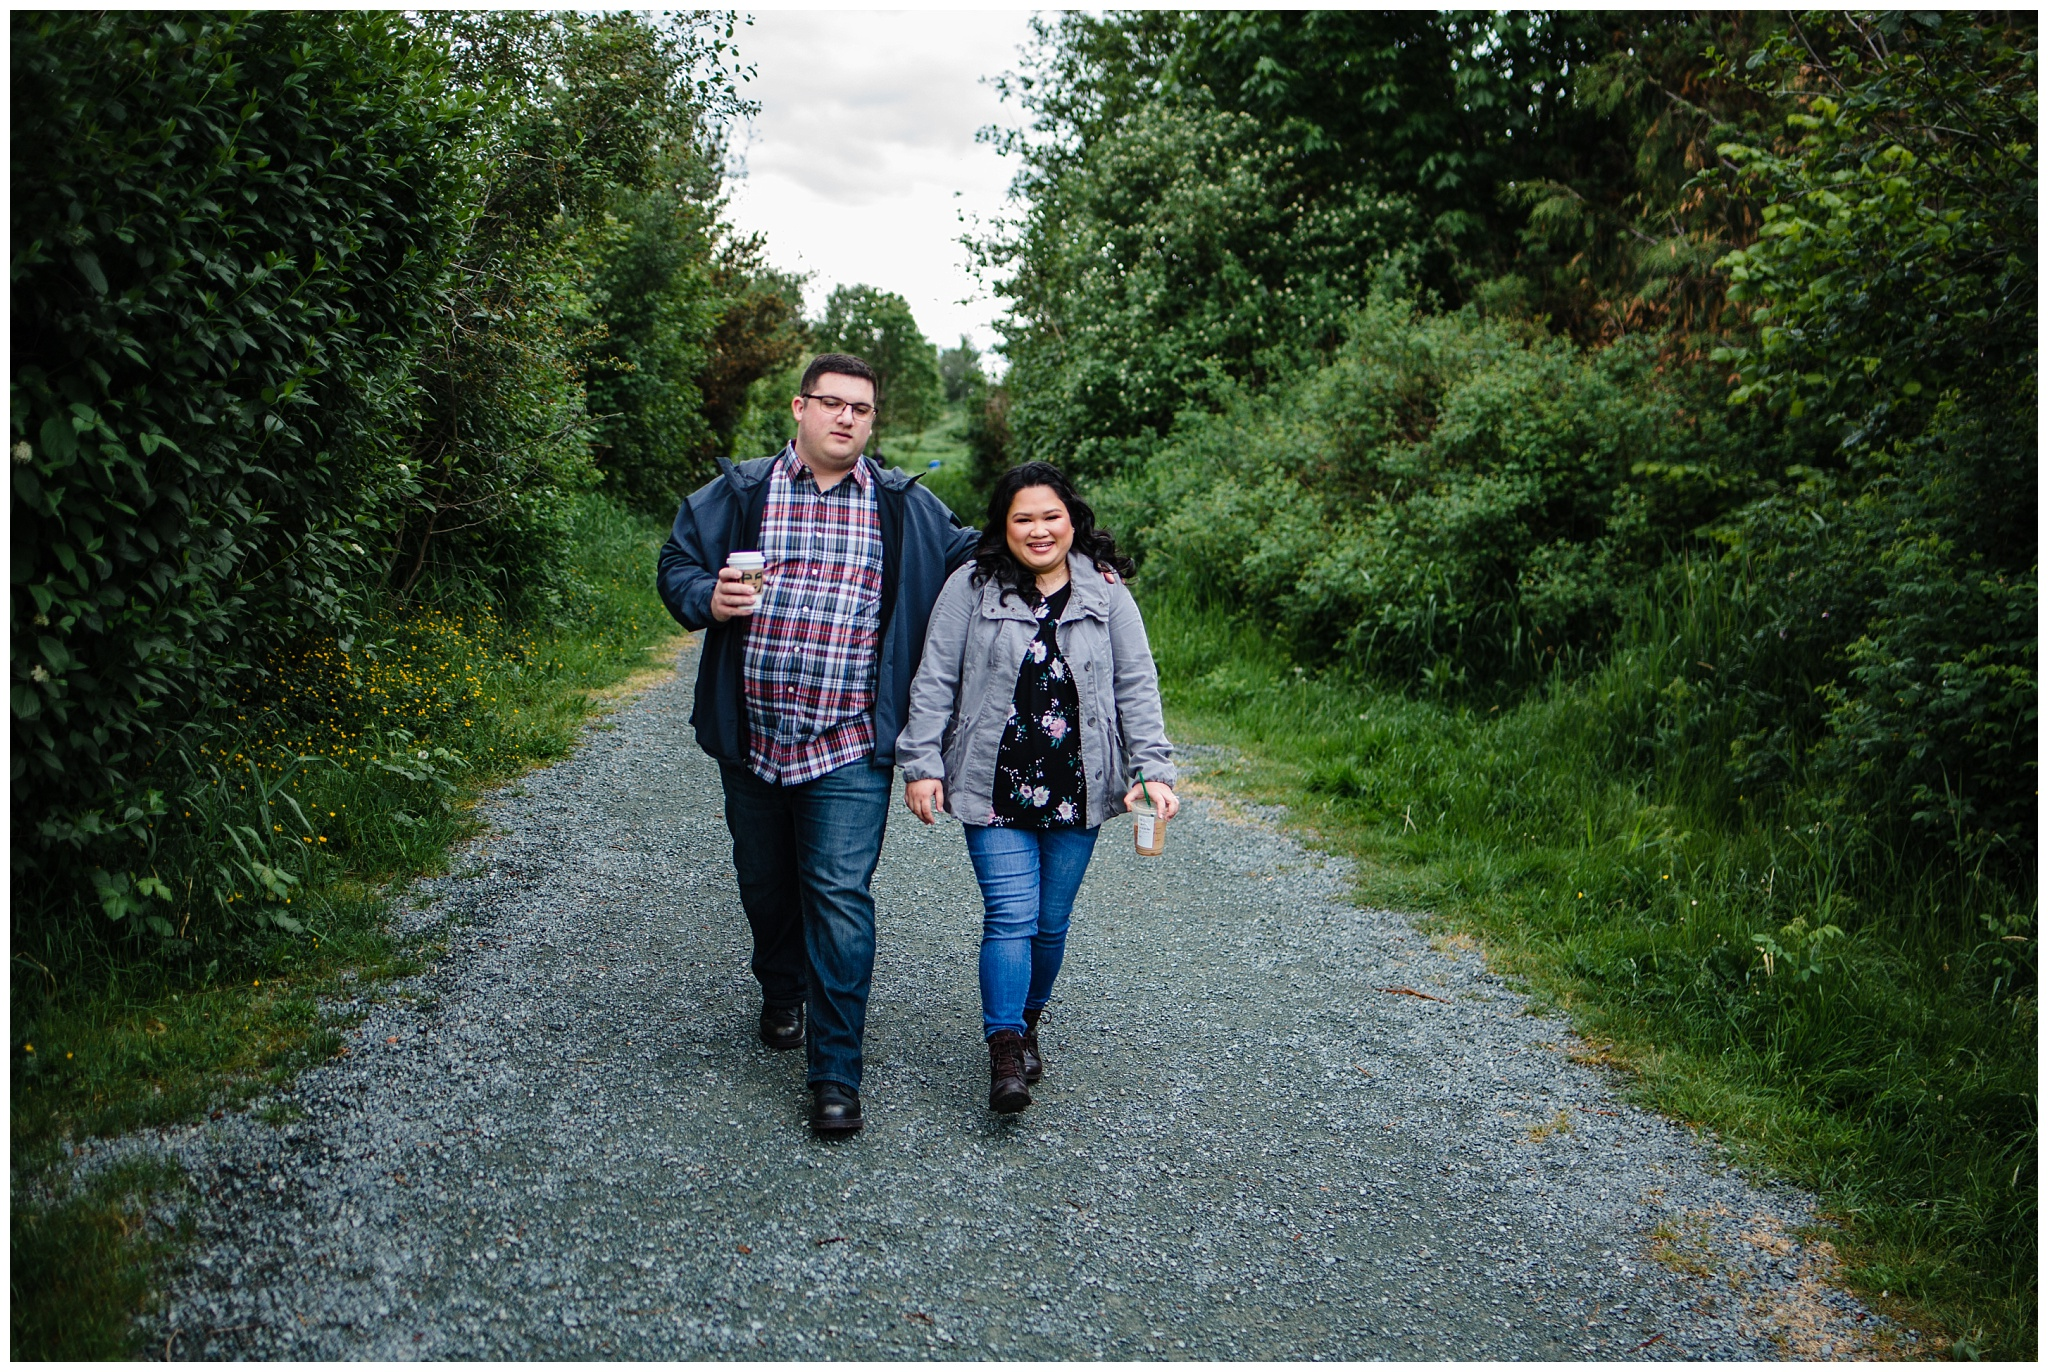 McKay Creek Park Abbotsford Spring Engagement Photos Happy Forest Trees Green Candid Fun Couple Photos_0004.jpg